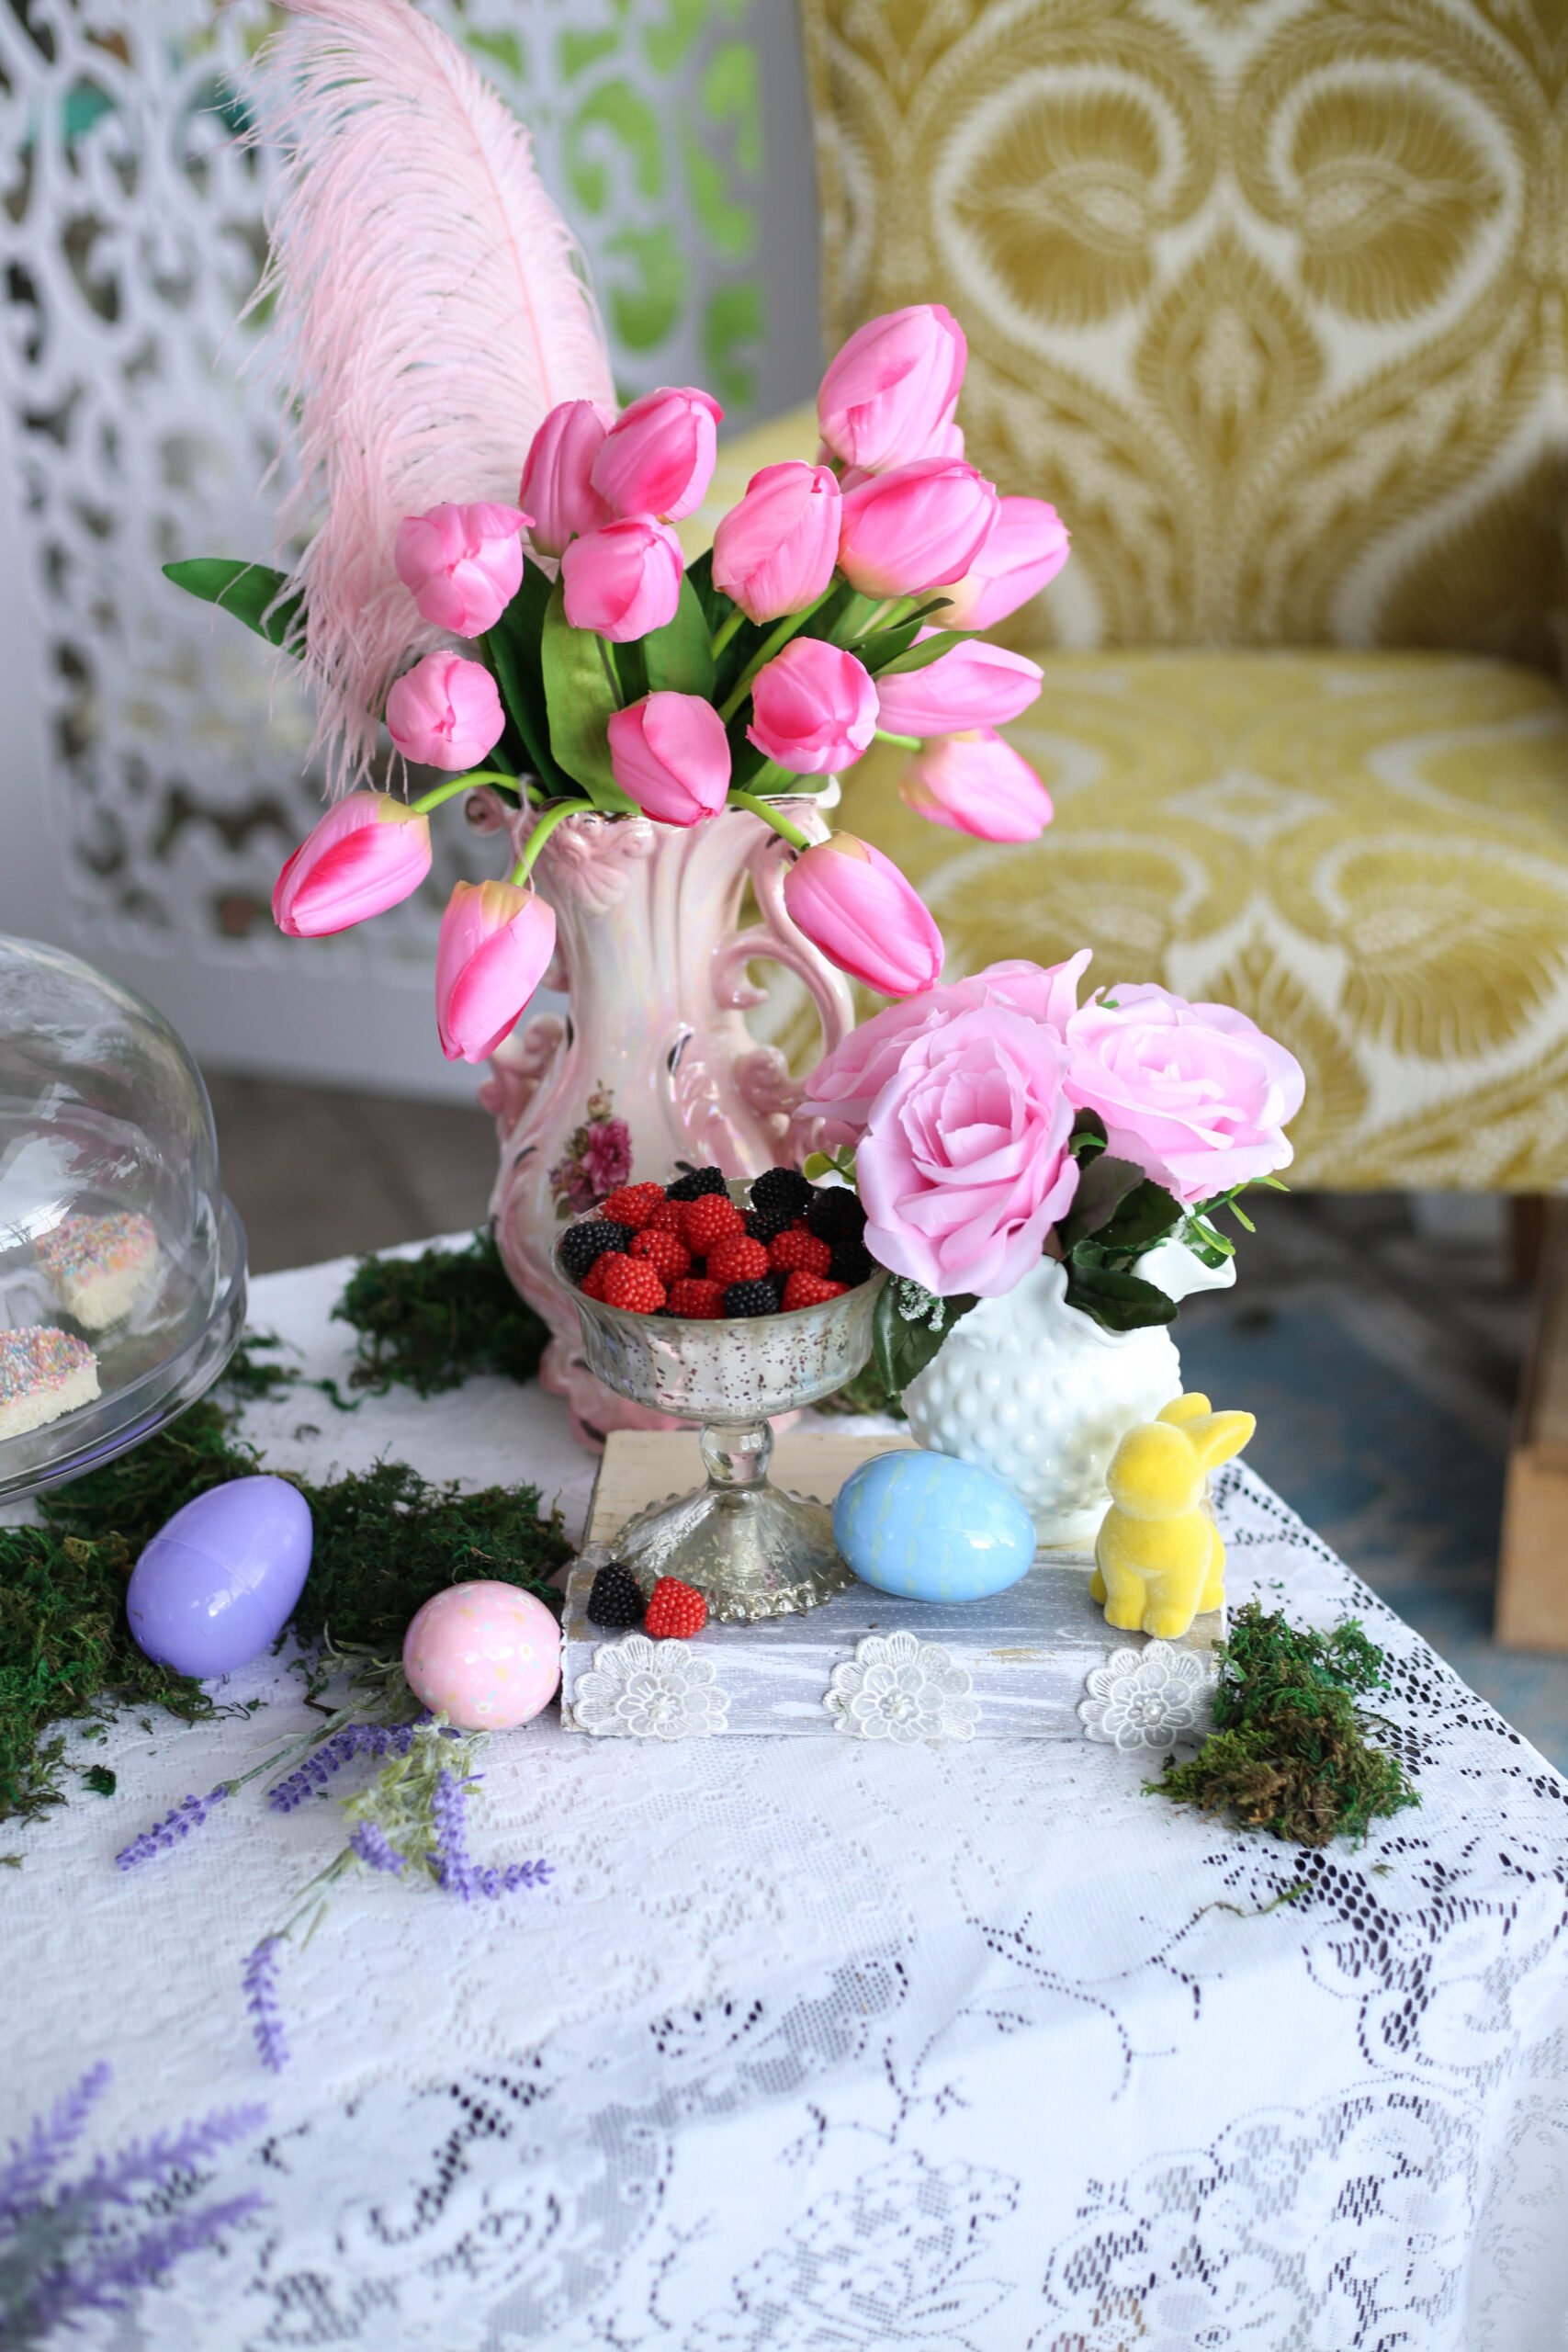 spring tulips in a pink vase